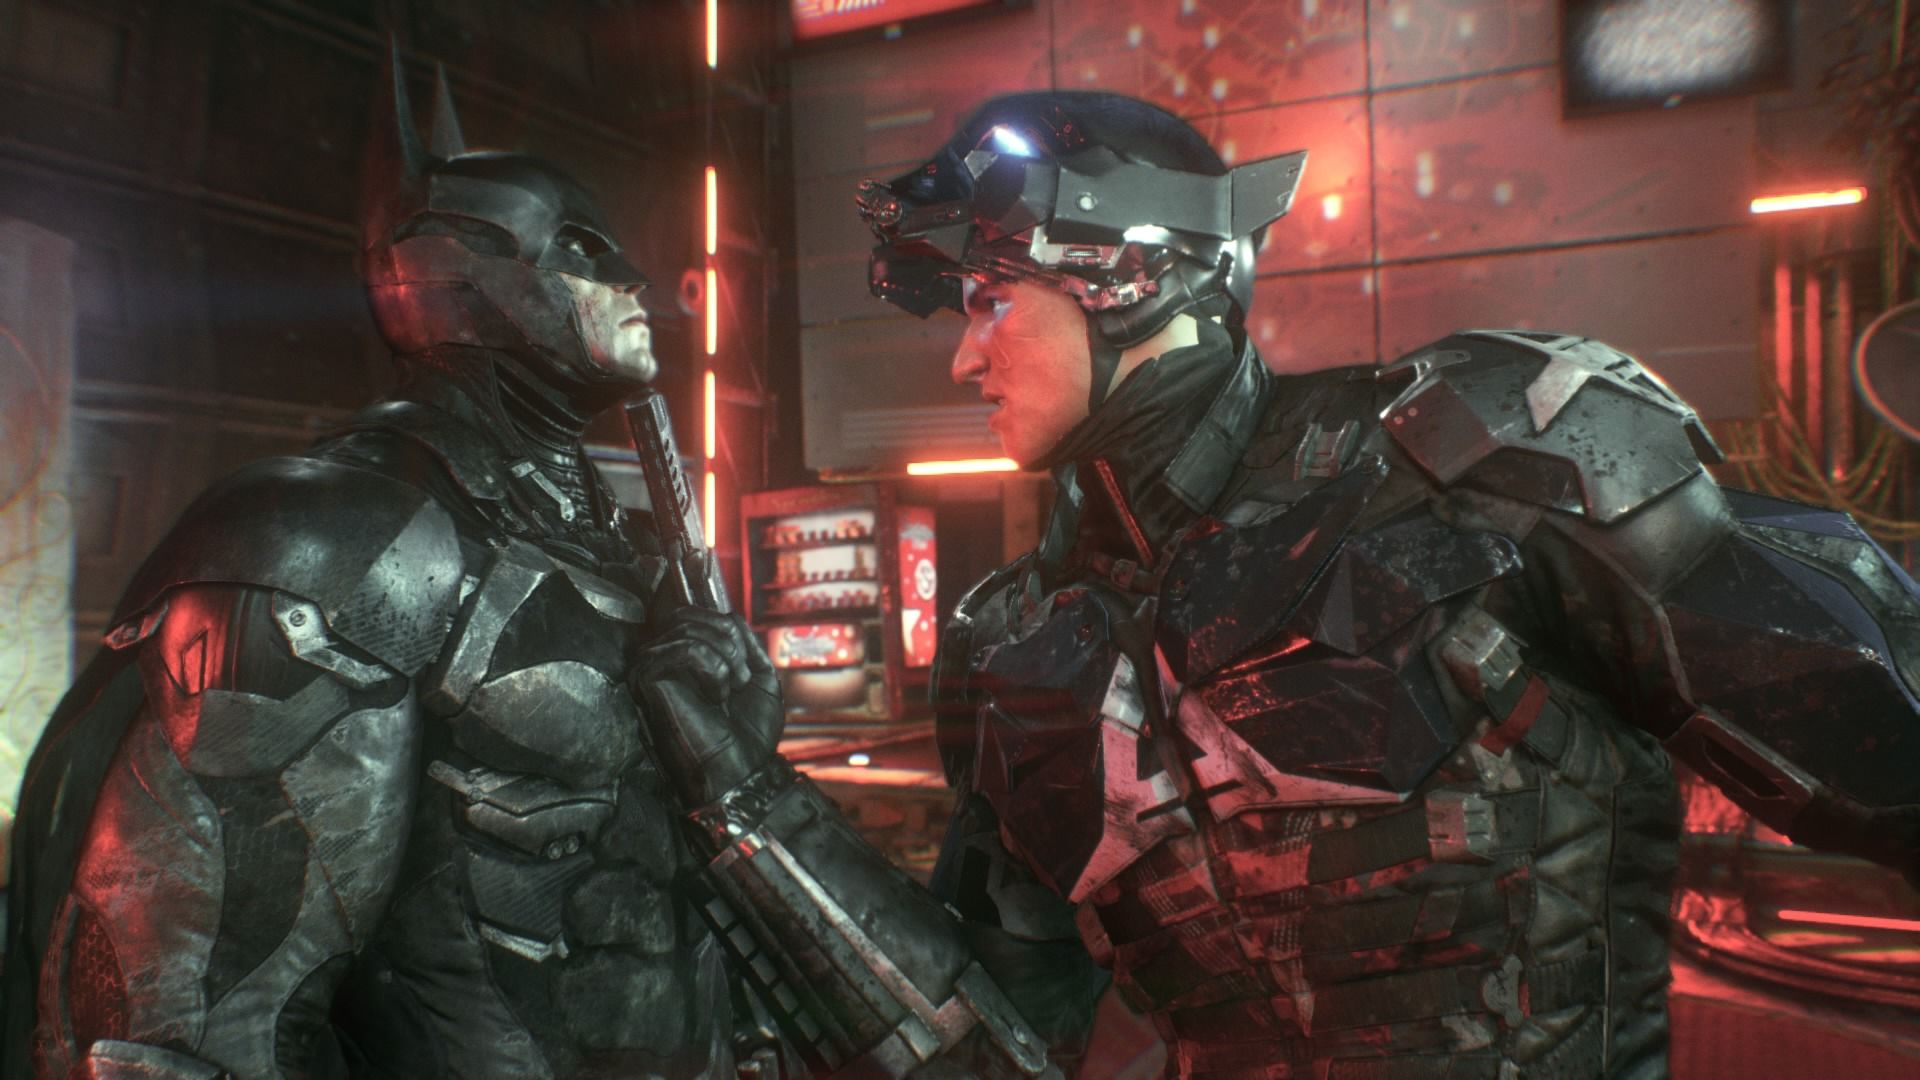 Batman and the Arkham Knight meet face to face at last.